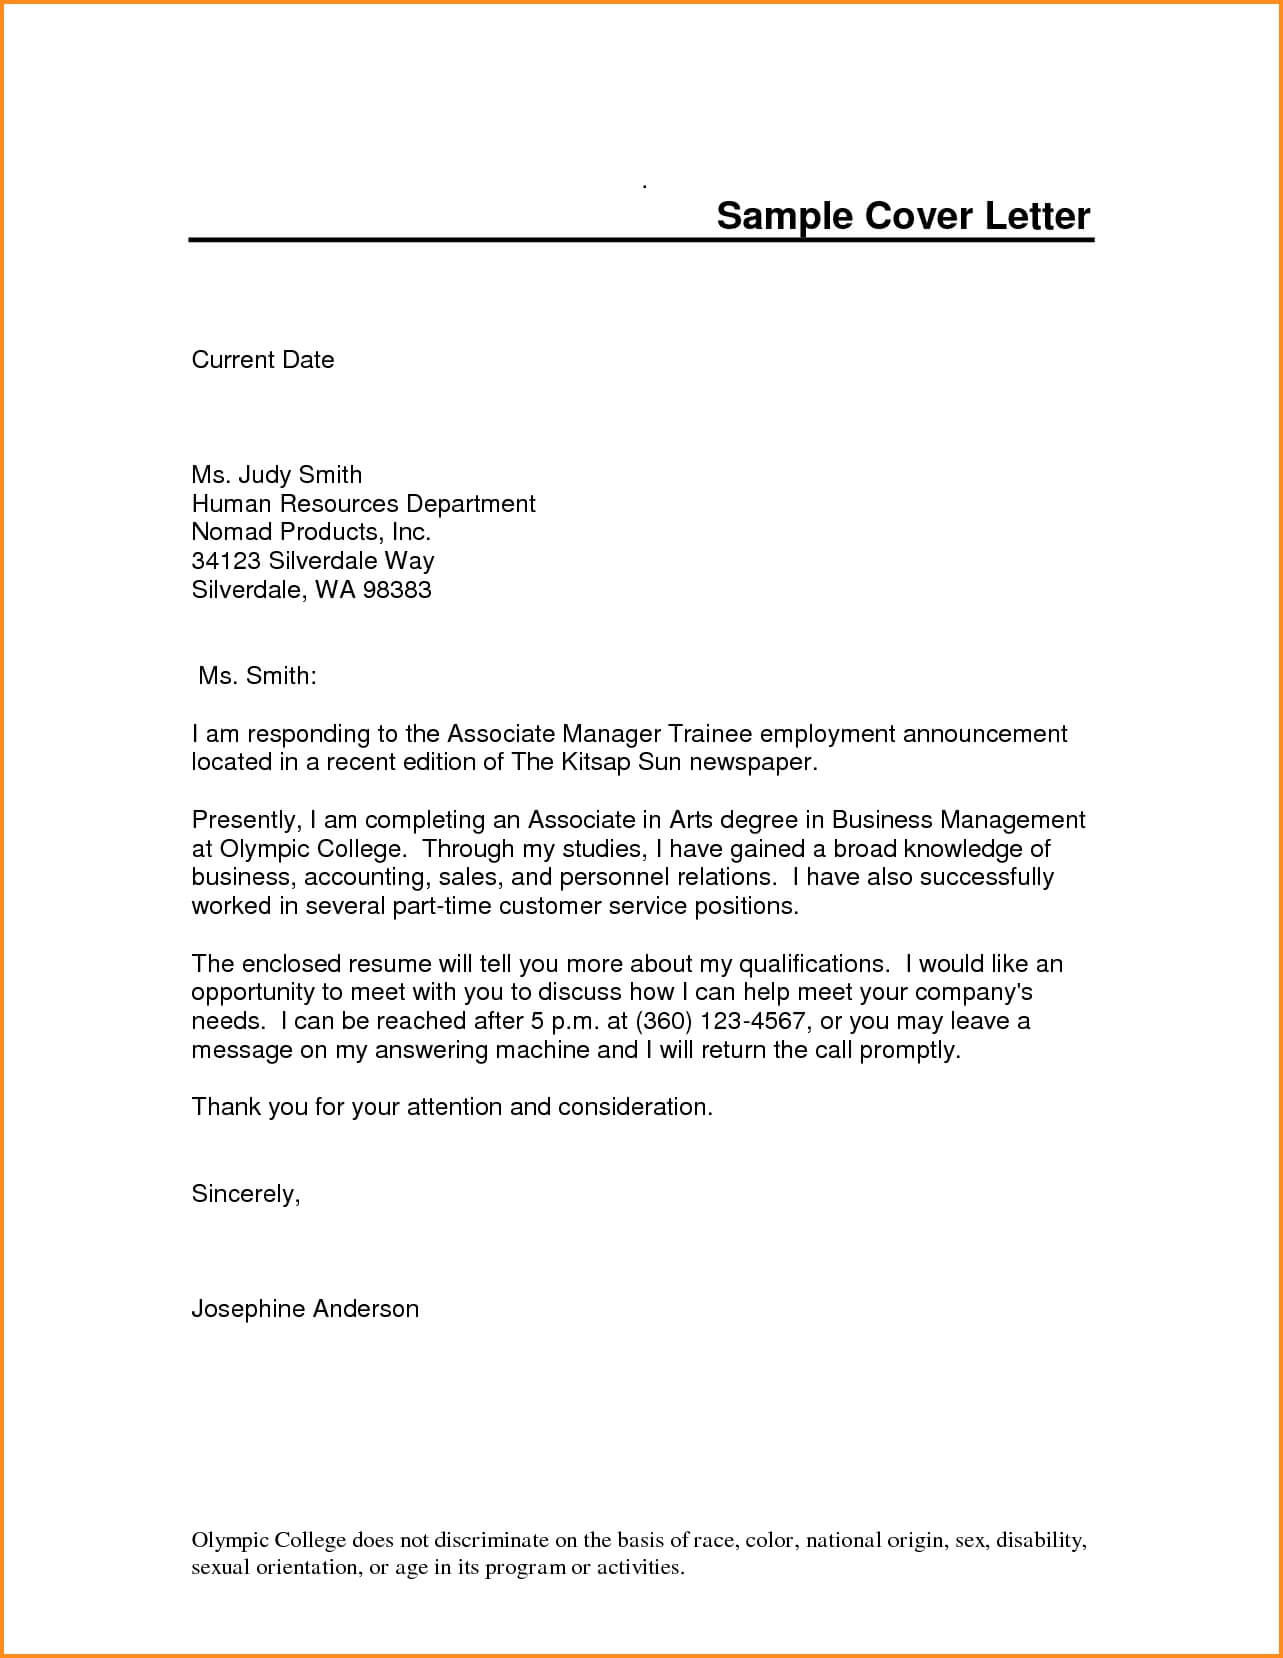 019 Letter Of Interest Template Microsoft Word Free Resume Intended For Letter Of Interest Template Microsoft Word